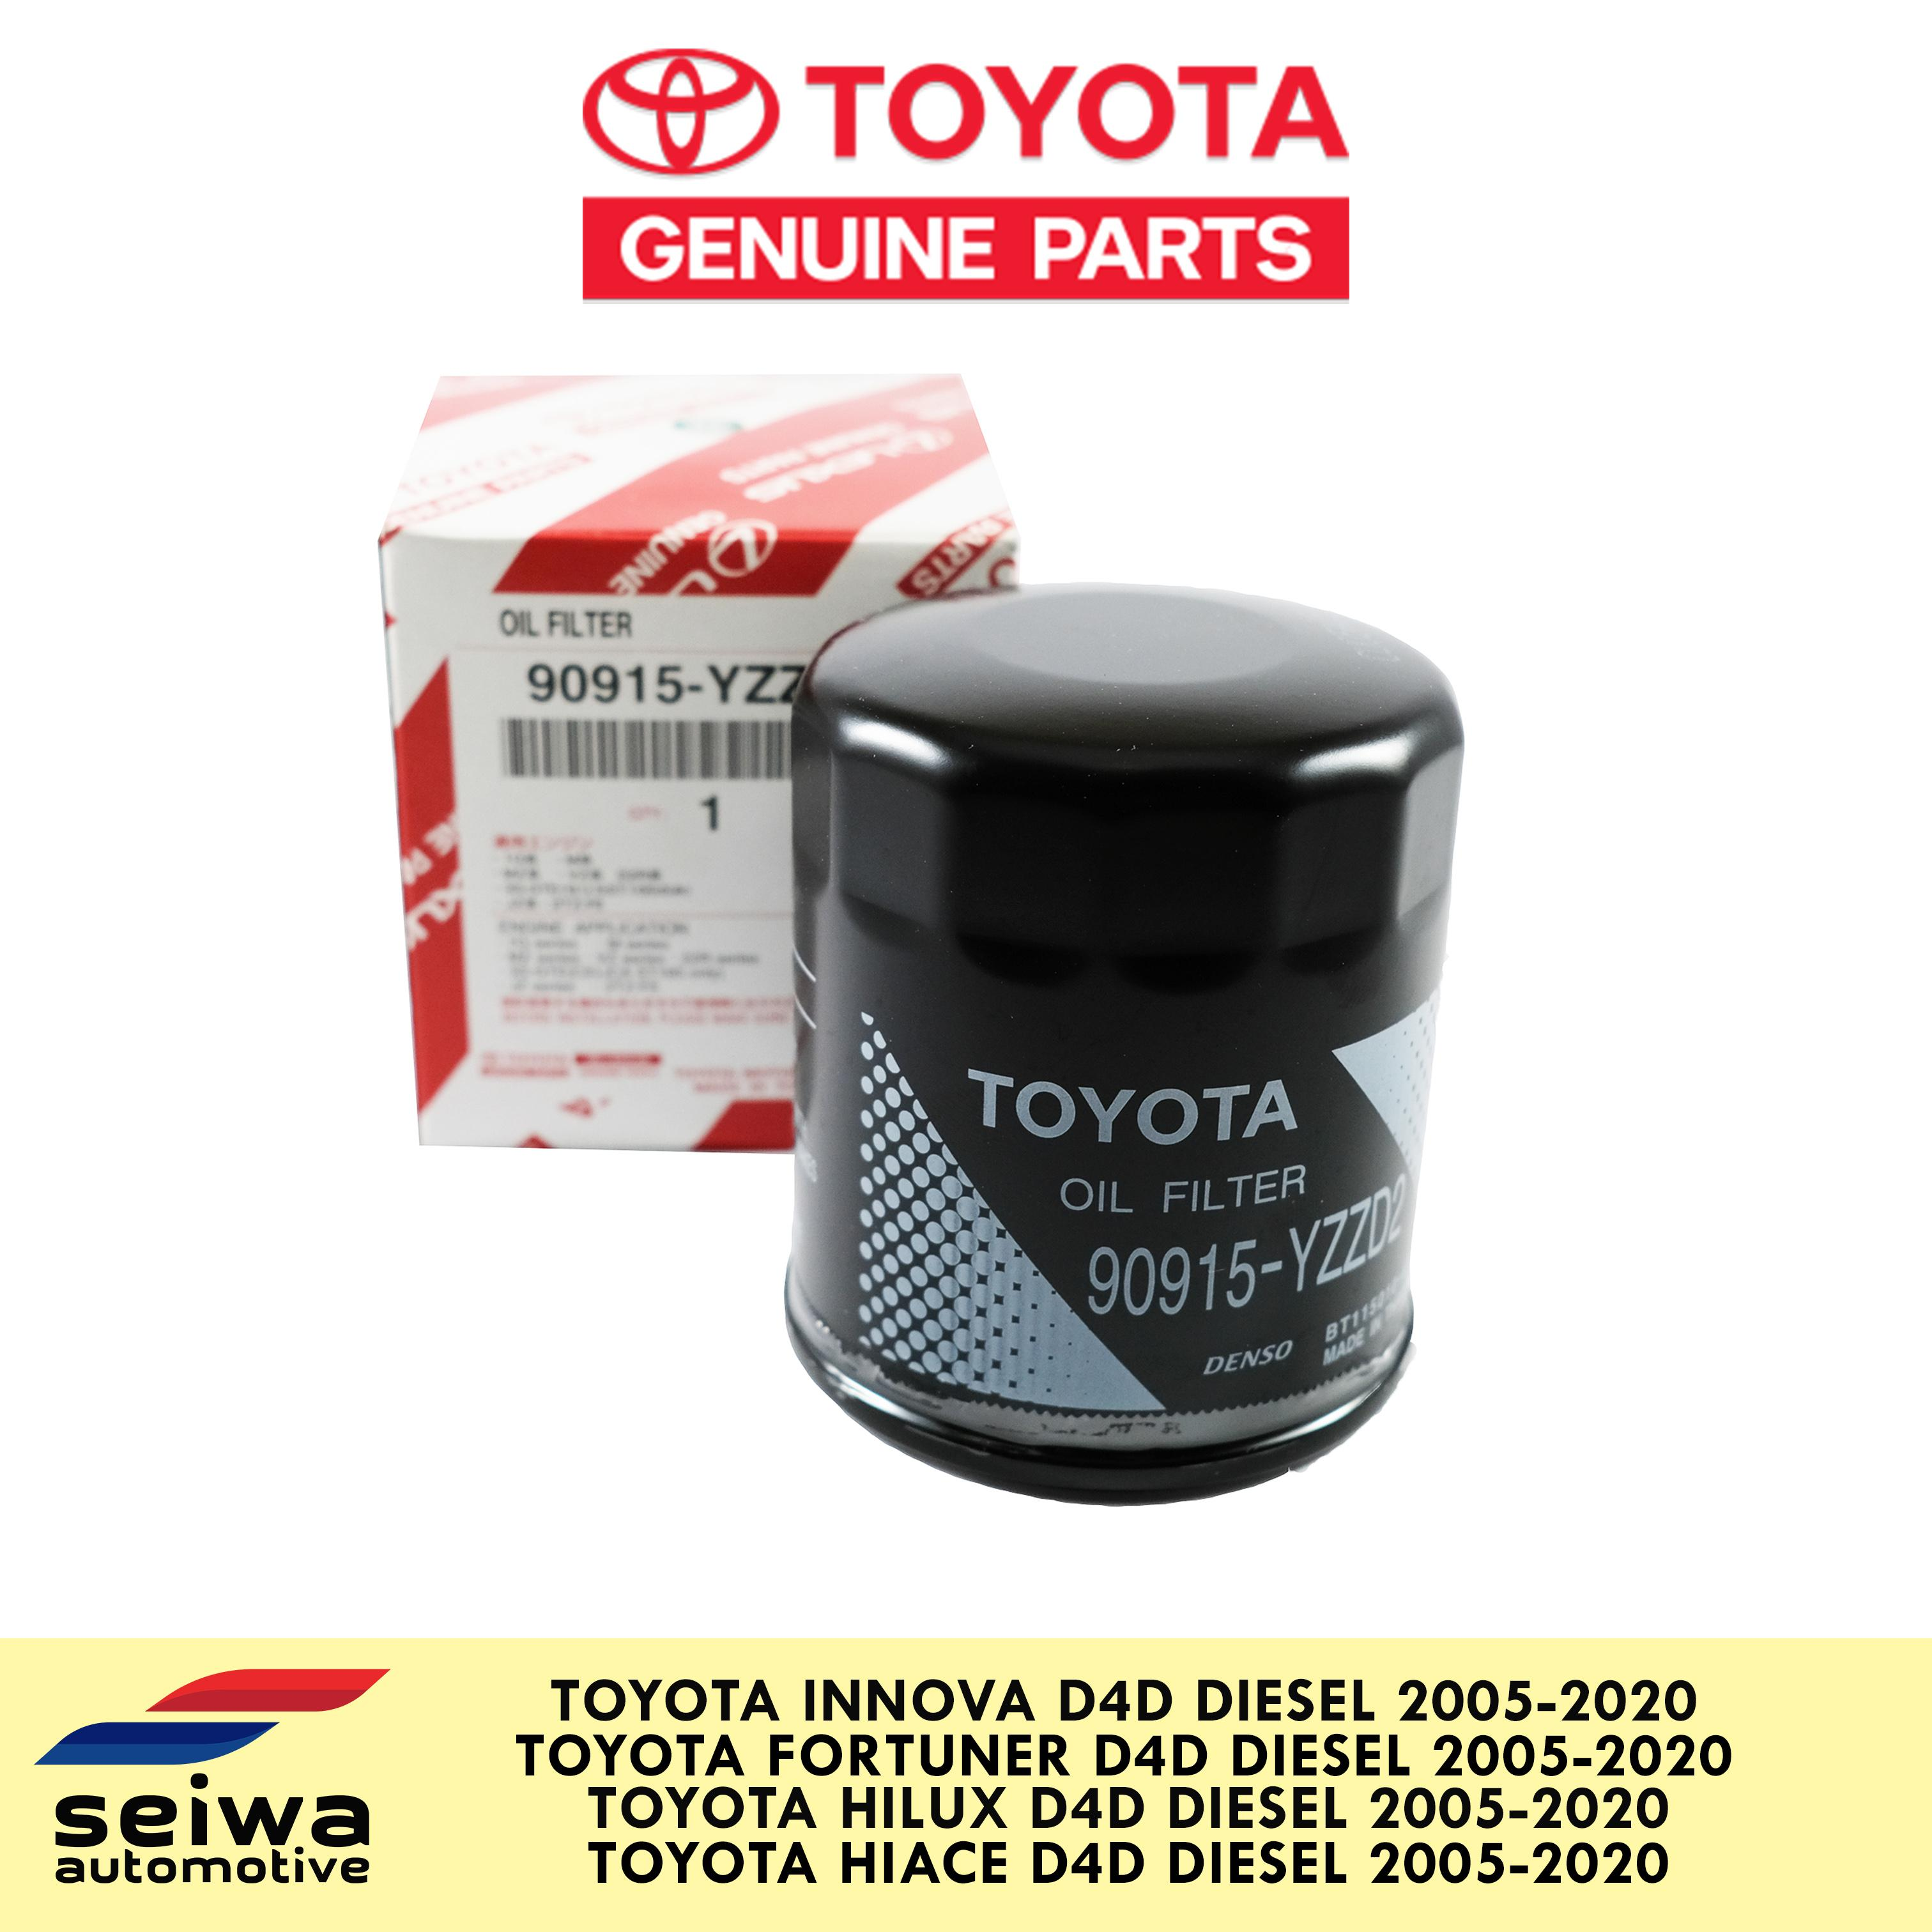 Toyota Innova Oil Filter - Toyota Fortuner Oil Filter - Toyota Hilux Oil  Filter - Toyota Hiace Oil Filter - Genuine Toyota Auto Parts - D4D Engine